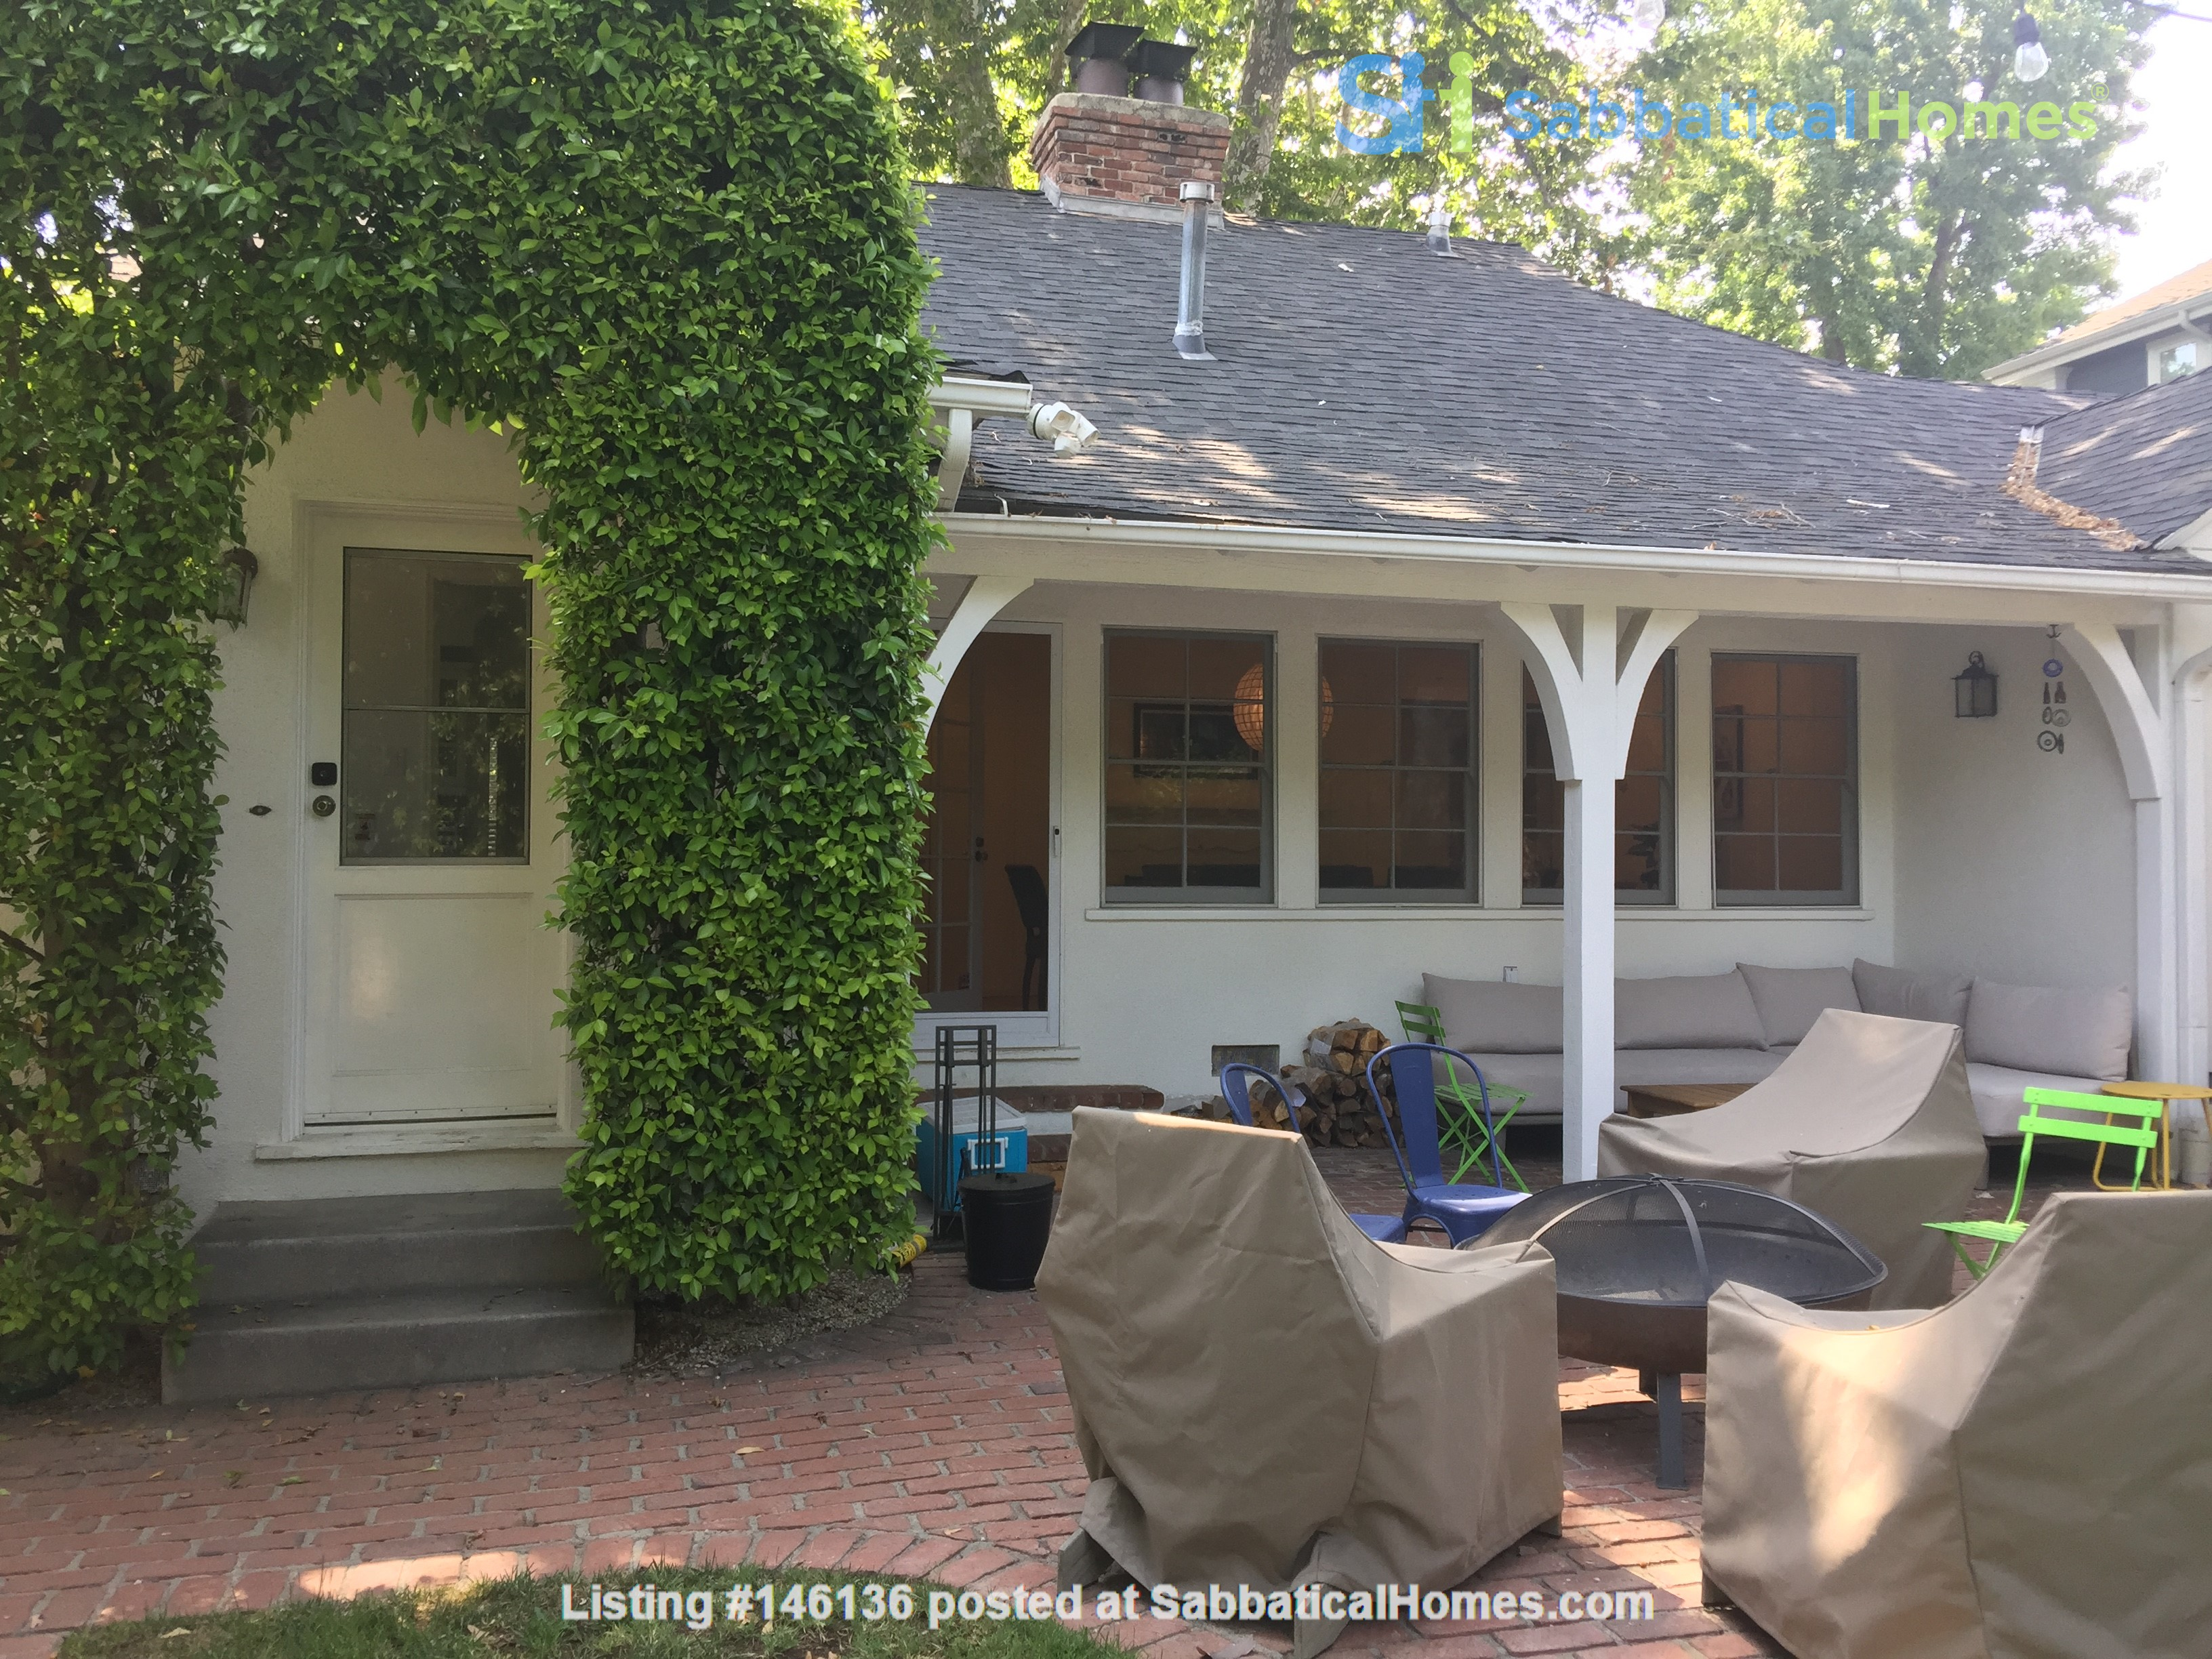 Charming storybook home with great location and pool Home Rental in Los Angeles 2